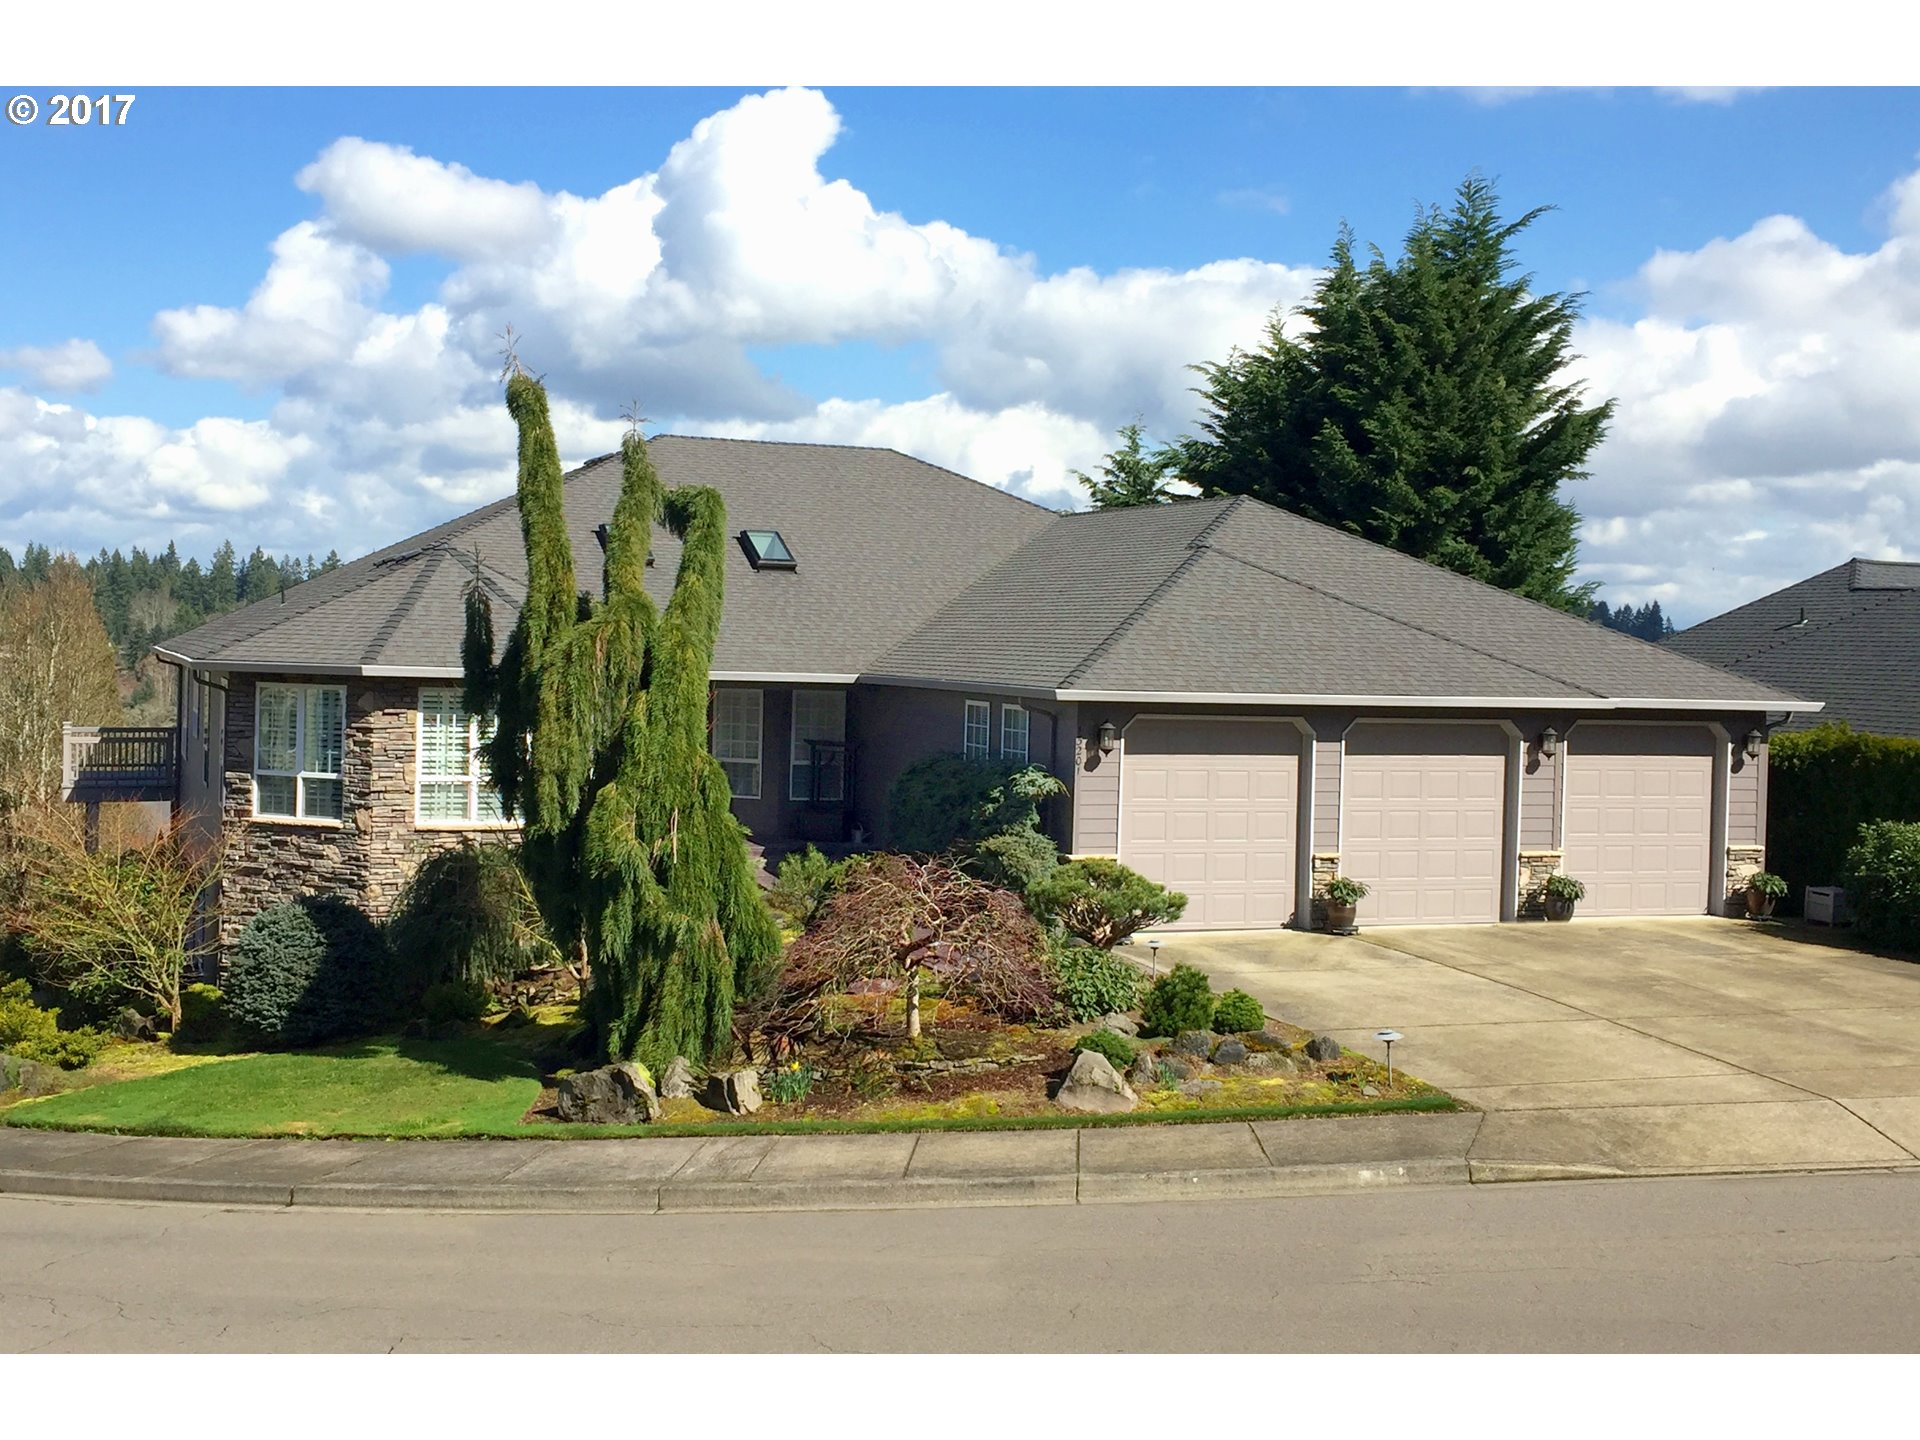 13201 NW 33RD AVE, Vancouver, WA 98685